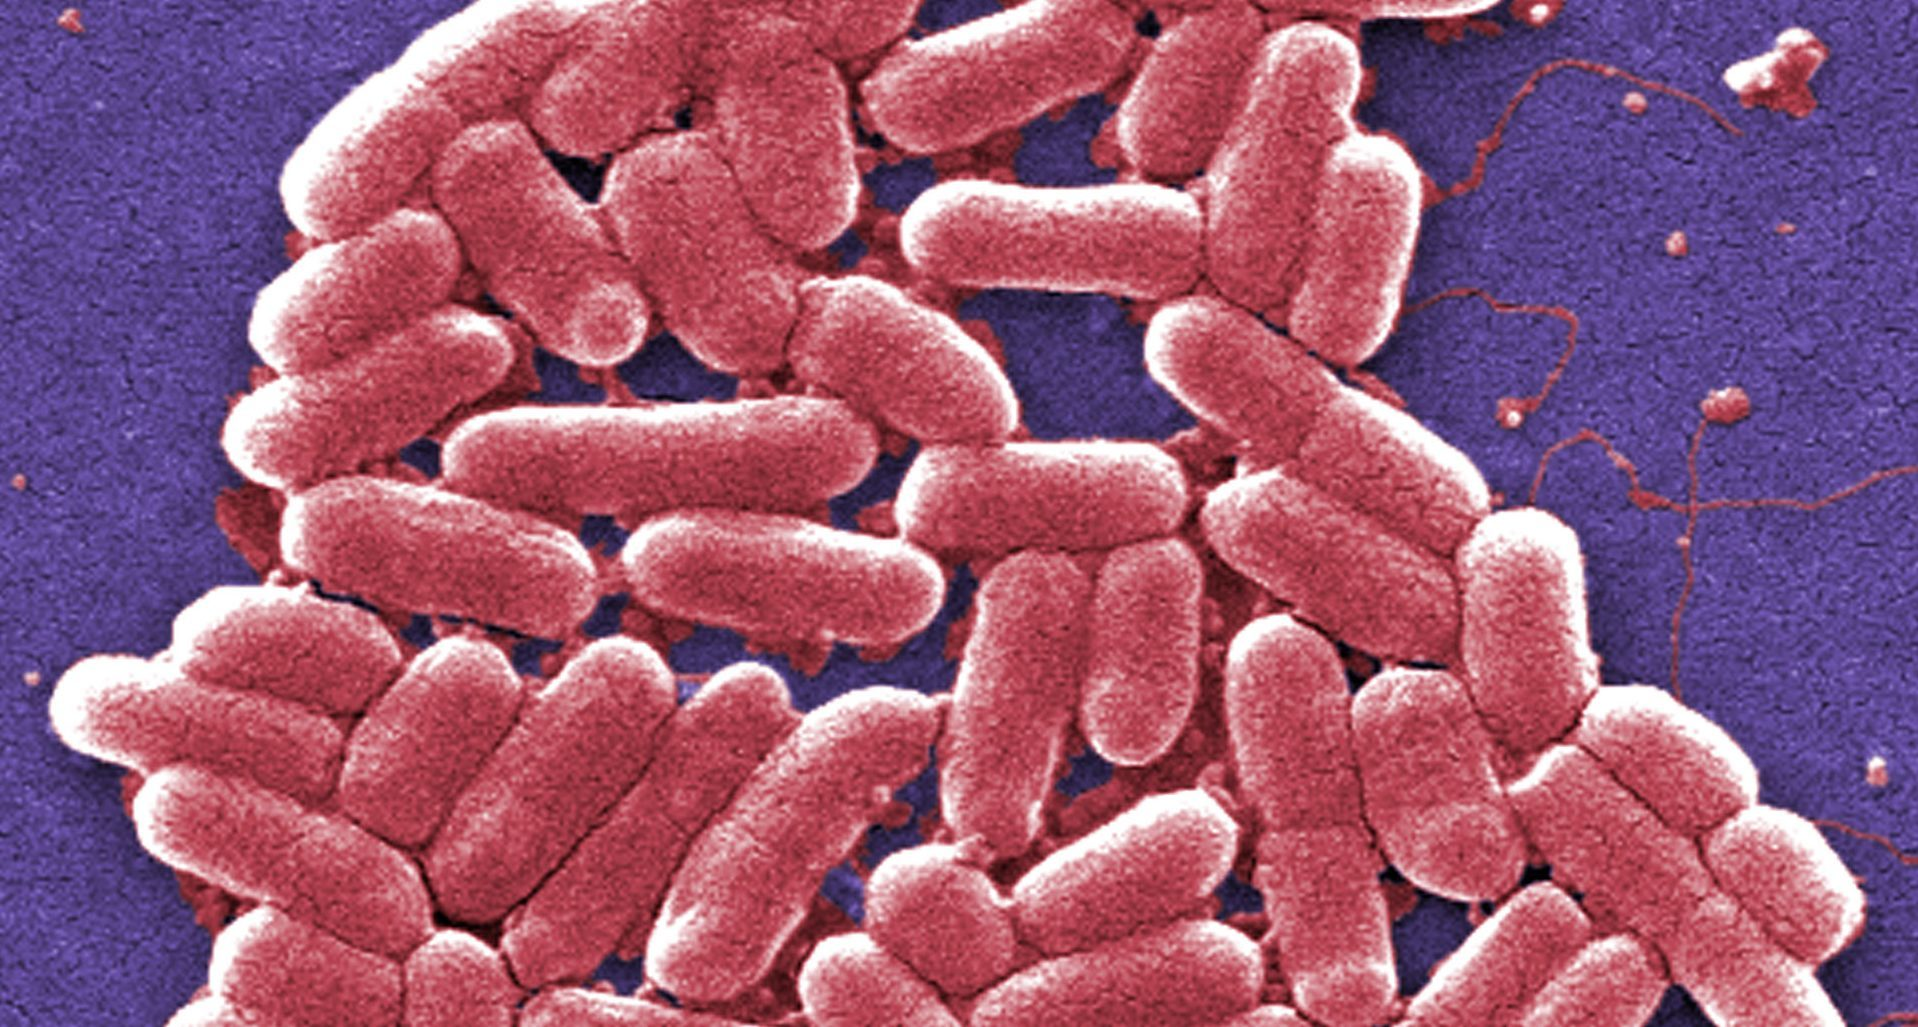 Potentially deadly E. coli 0157 case confirmed in Angus